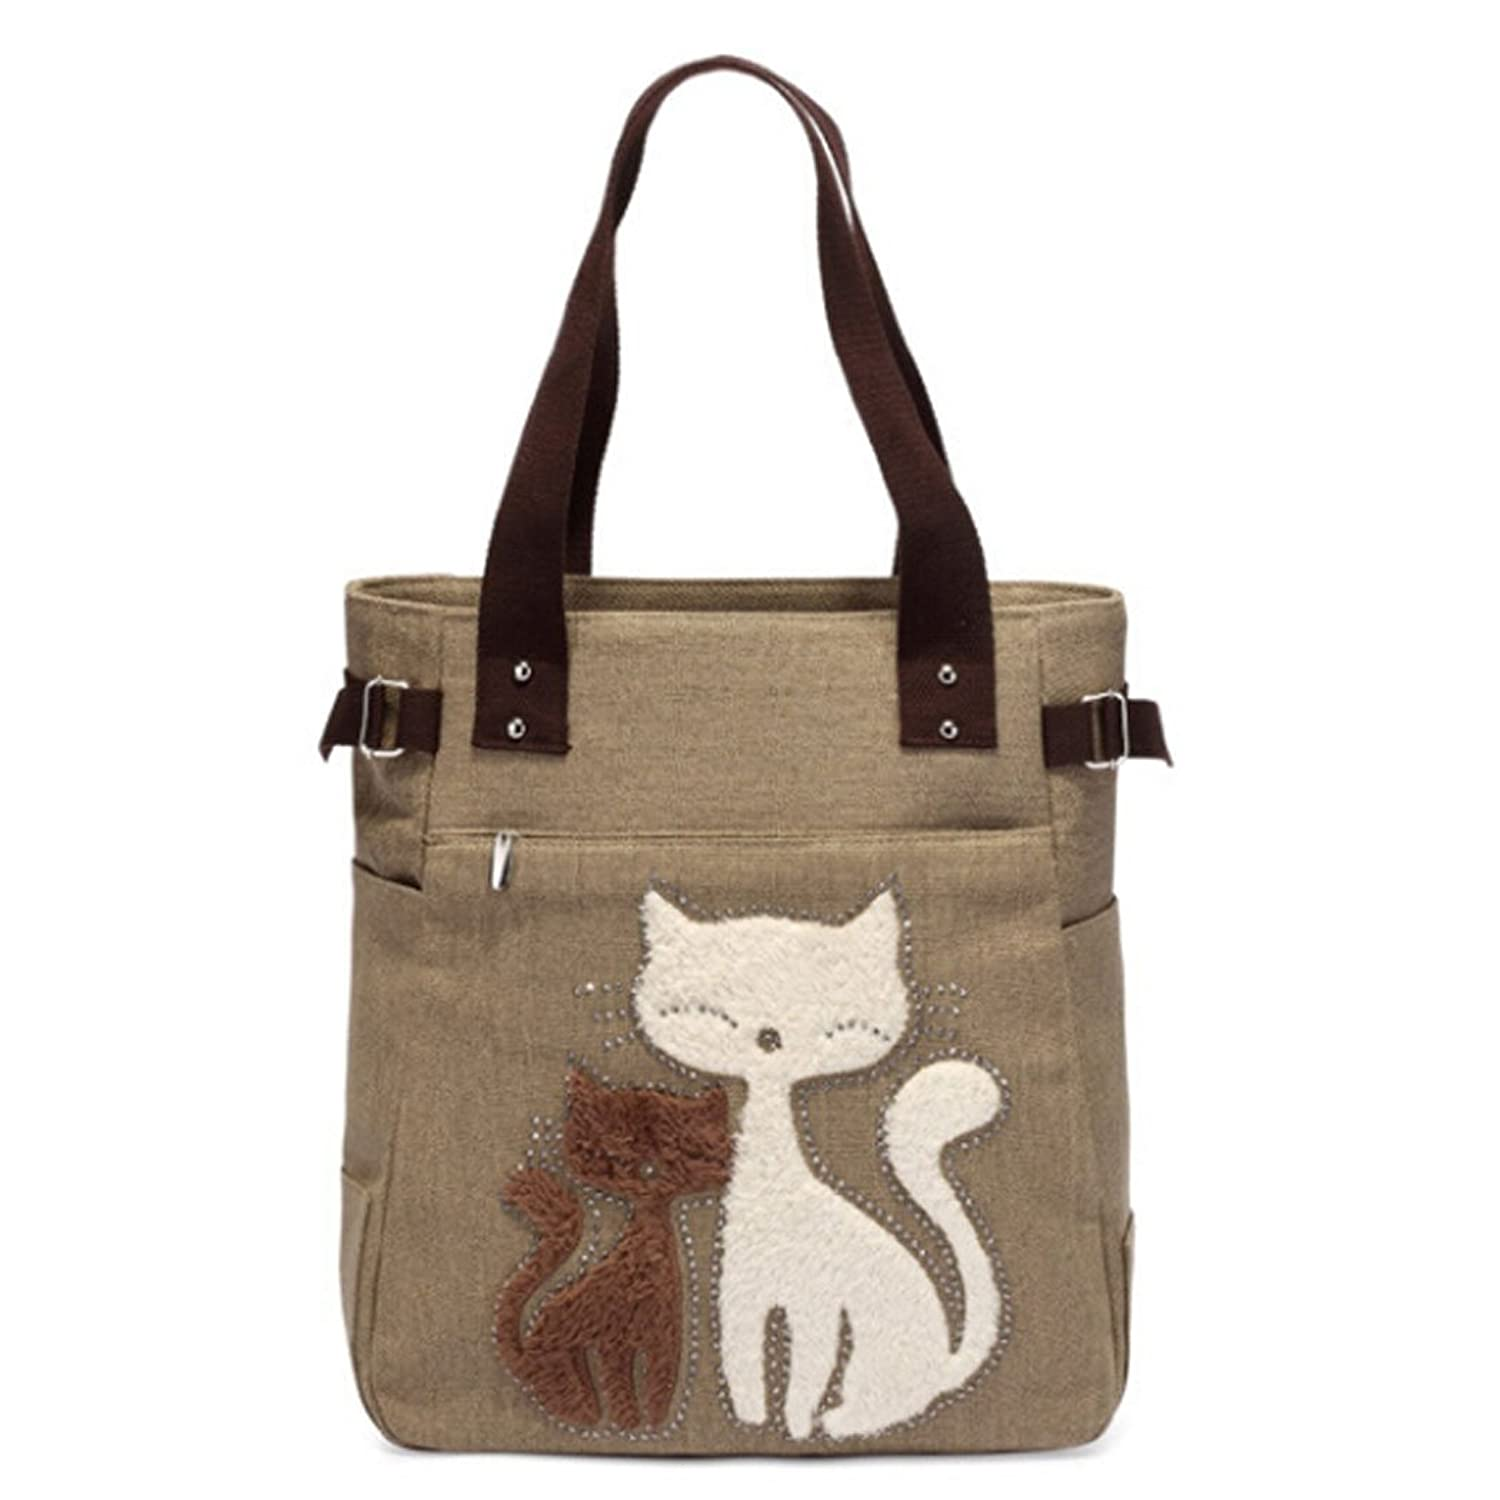 Hibelief Women Canvas Handbag Shoulder Bags Cat Totes For Girls